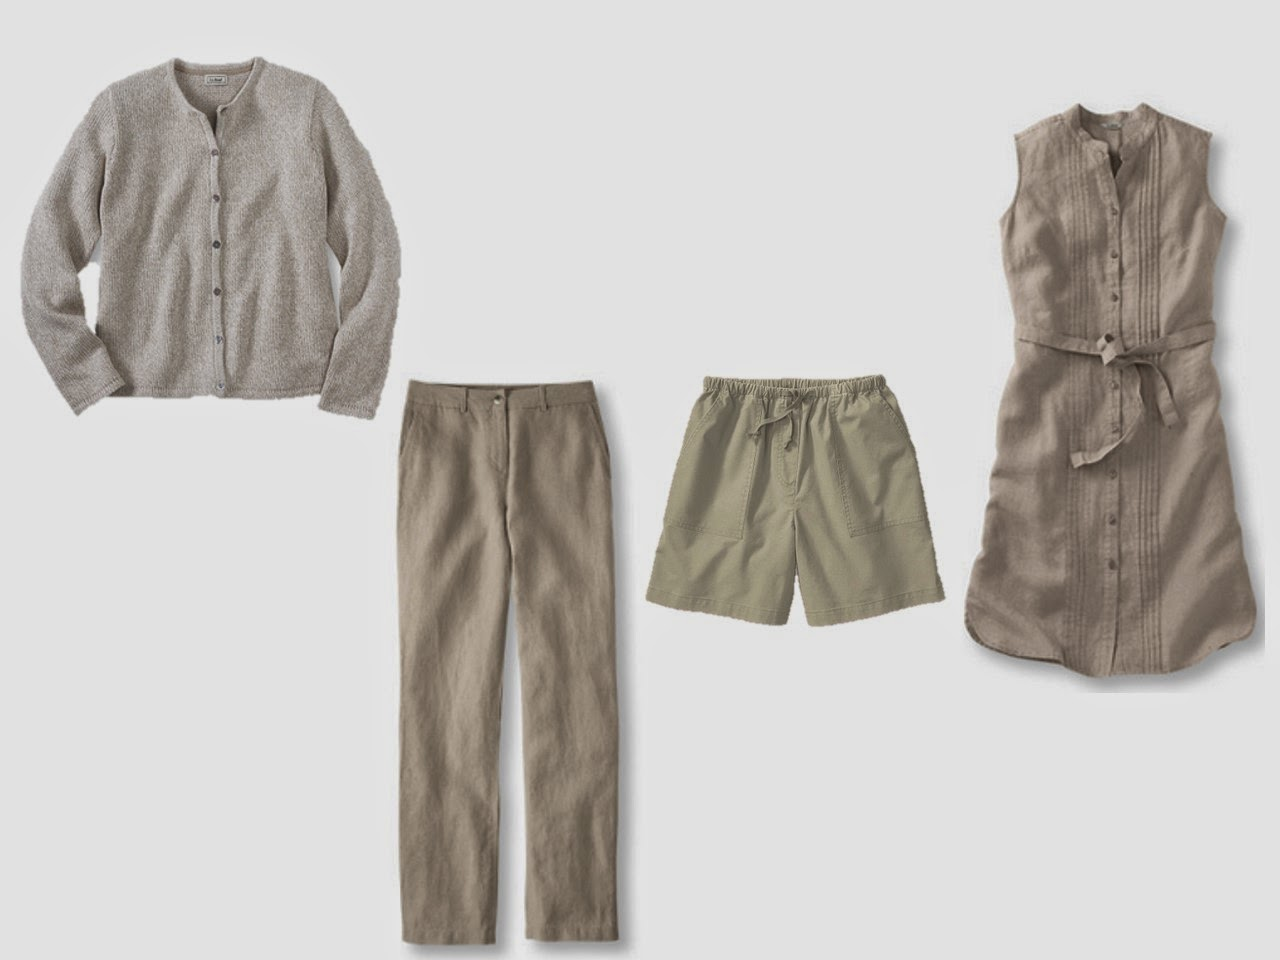 """casual """"suit equivalent"""": cardigan, pants, shorts and dress"""